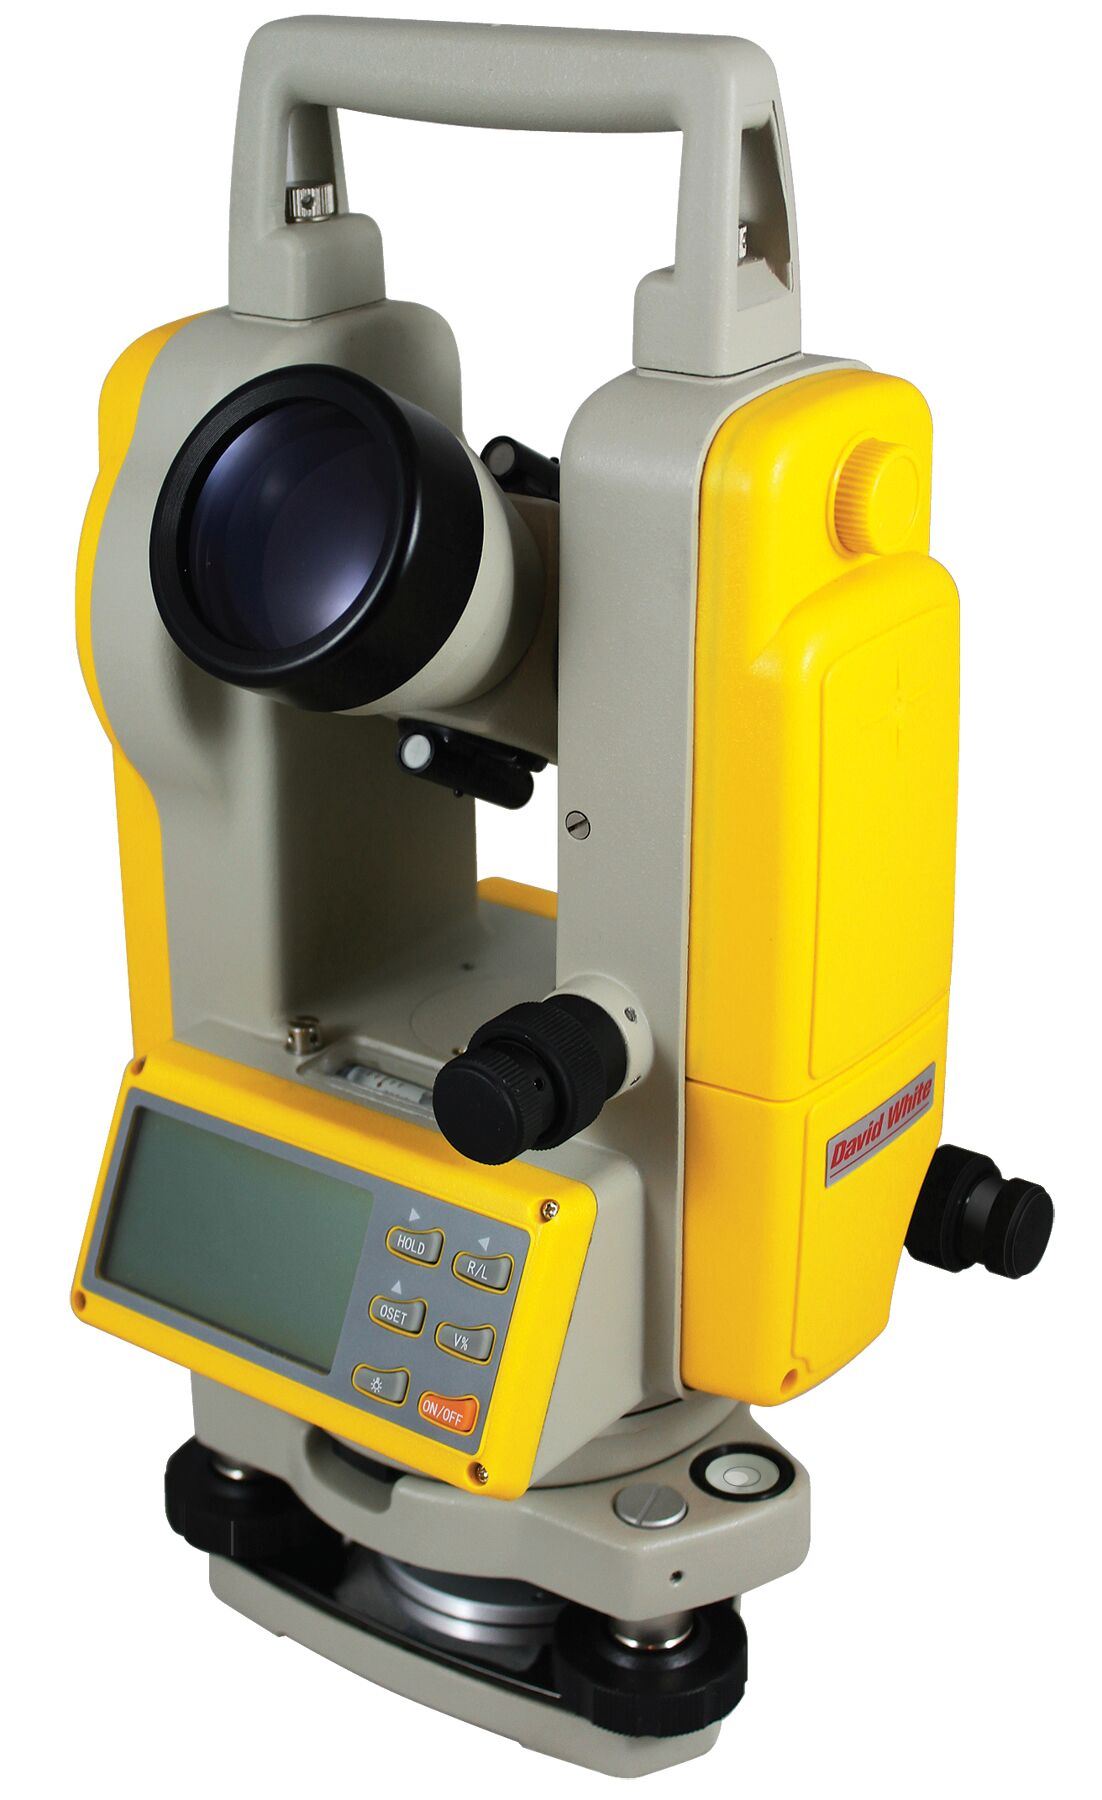 DT8-05P 5-Sec Digital Theodolite Optical Plummet